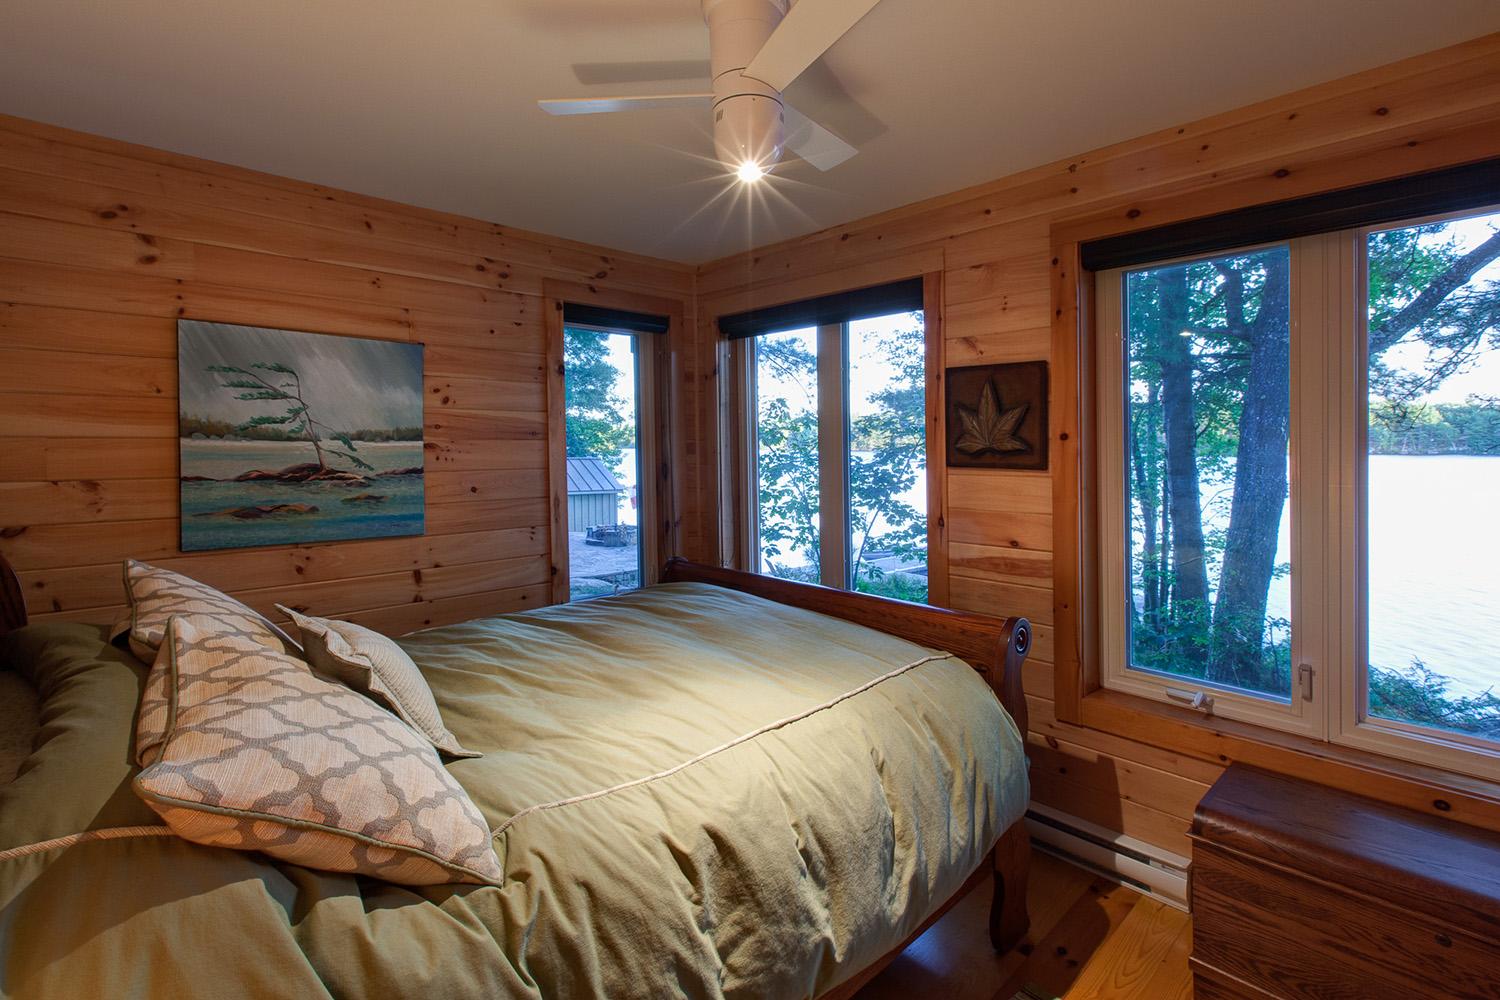 Guest bedroom with wrap around windows and view to the lake. Contemporary 3 bladed ceiling fan with light fixture